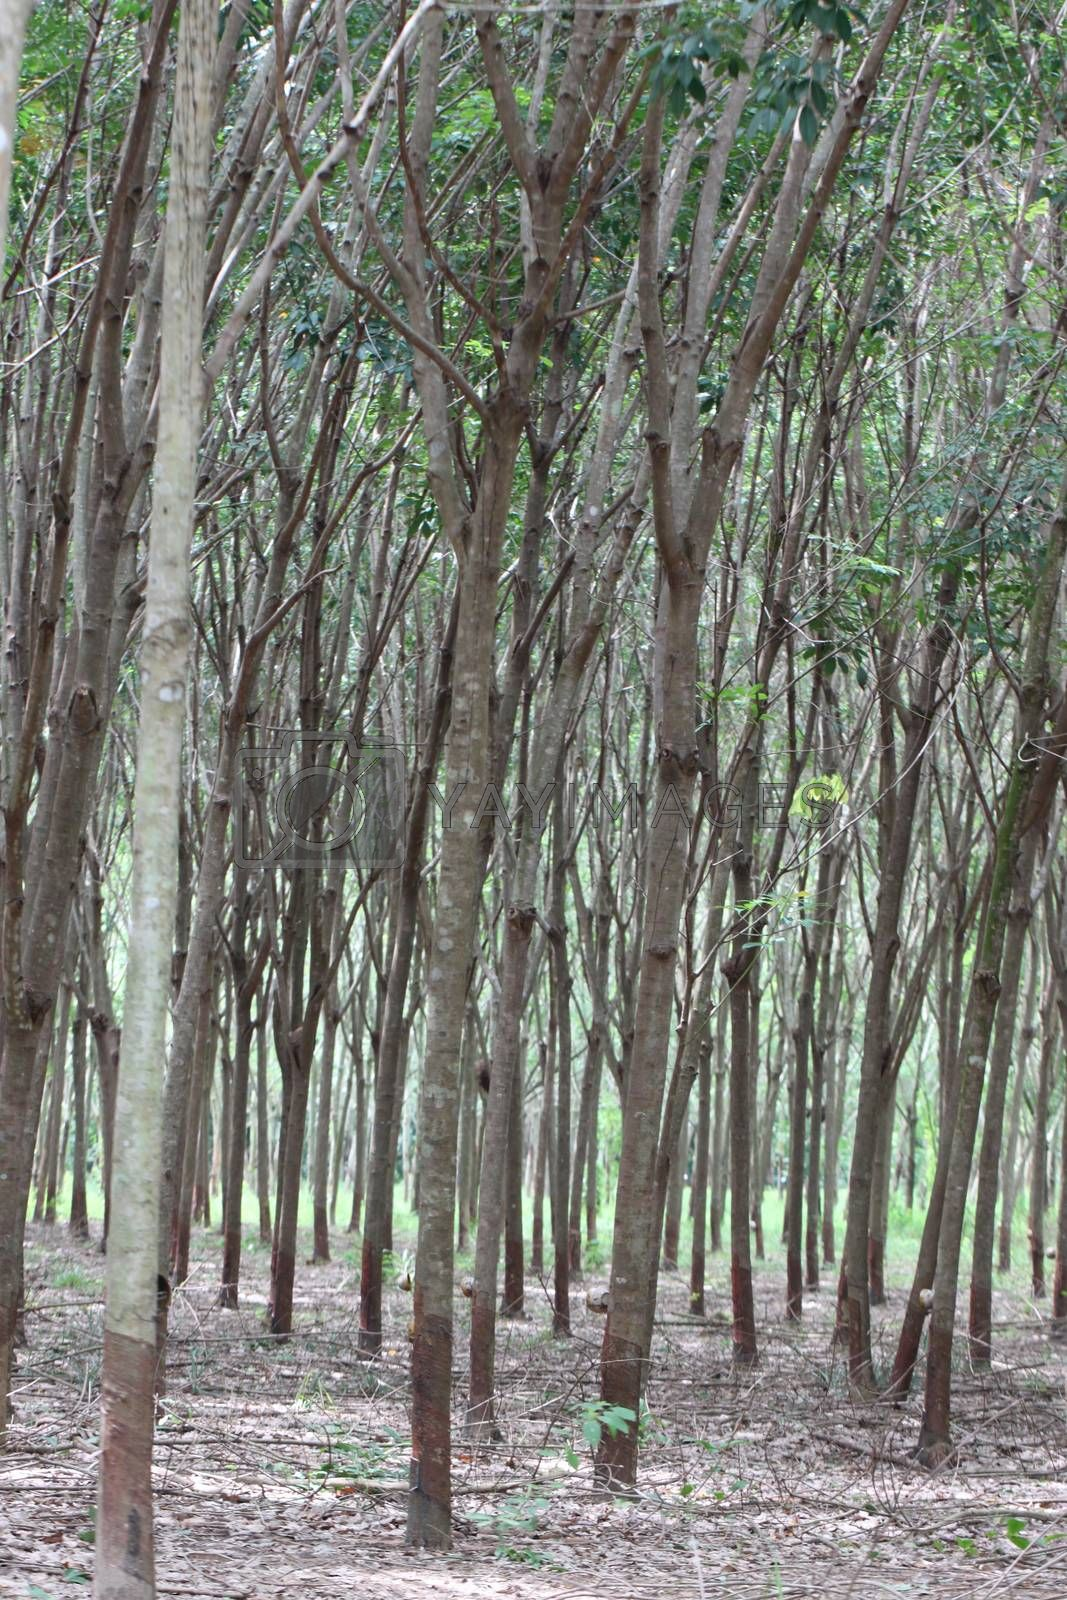 Rubber trees in the garden.